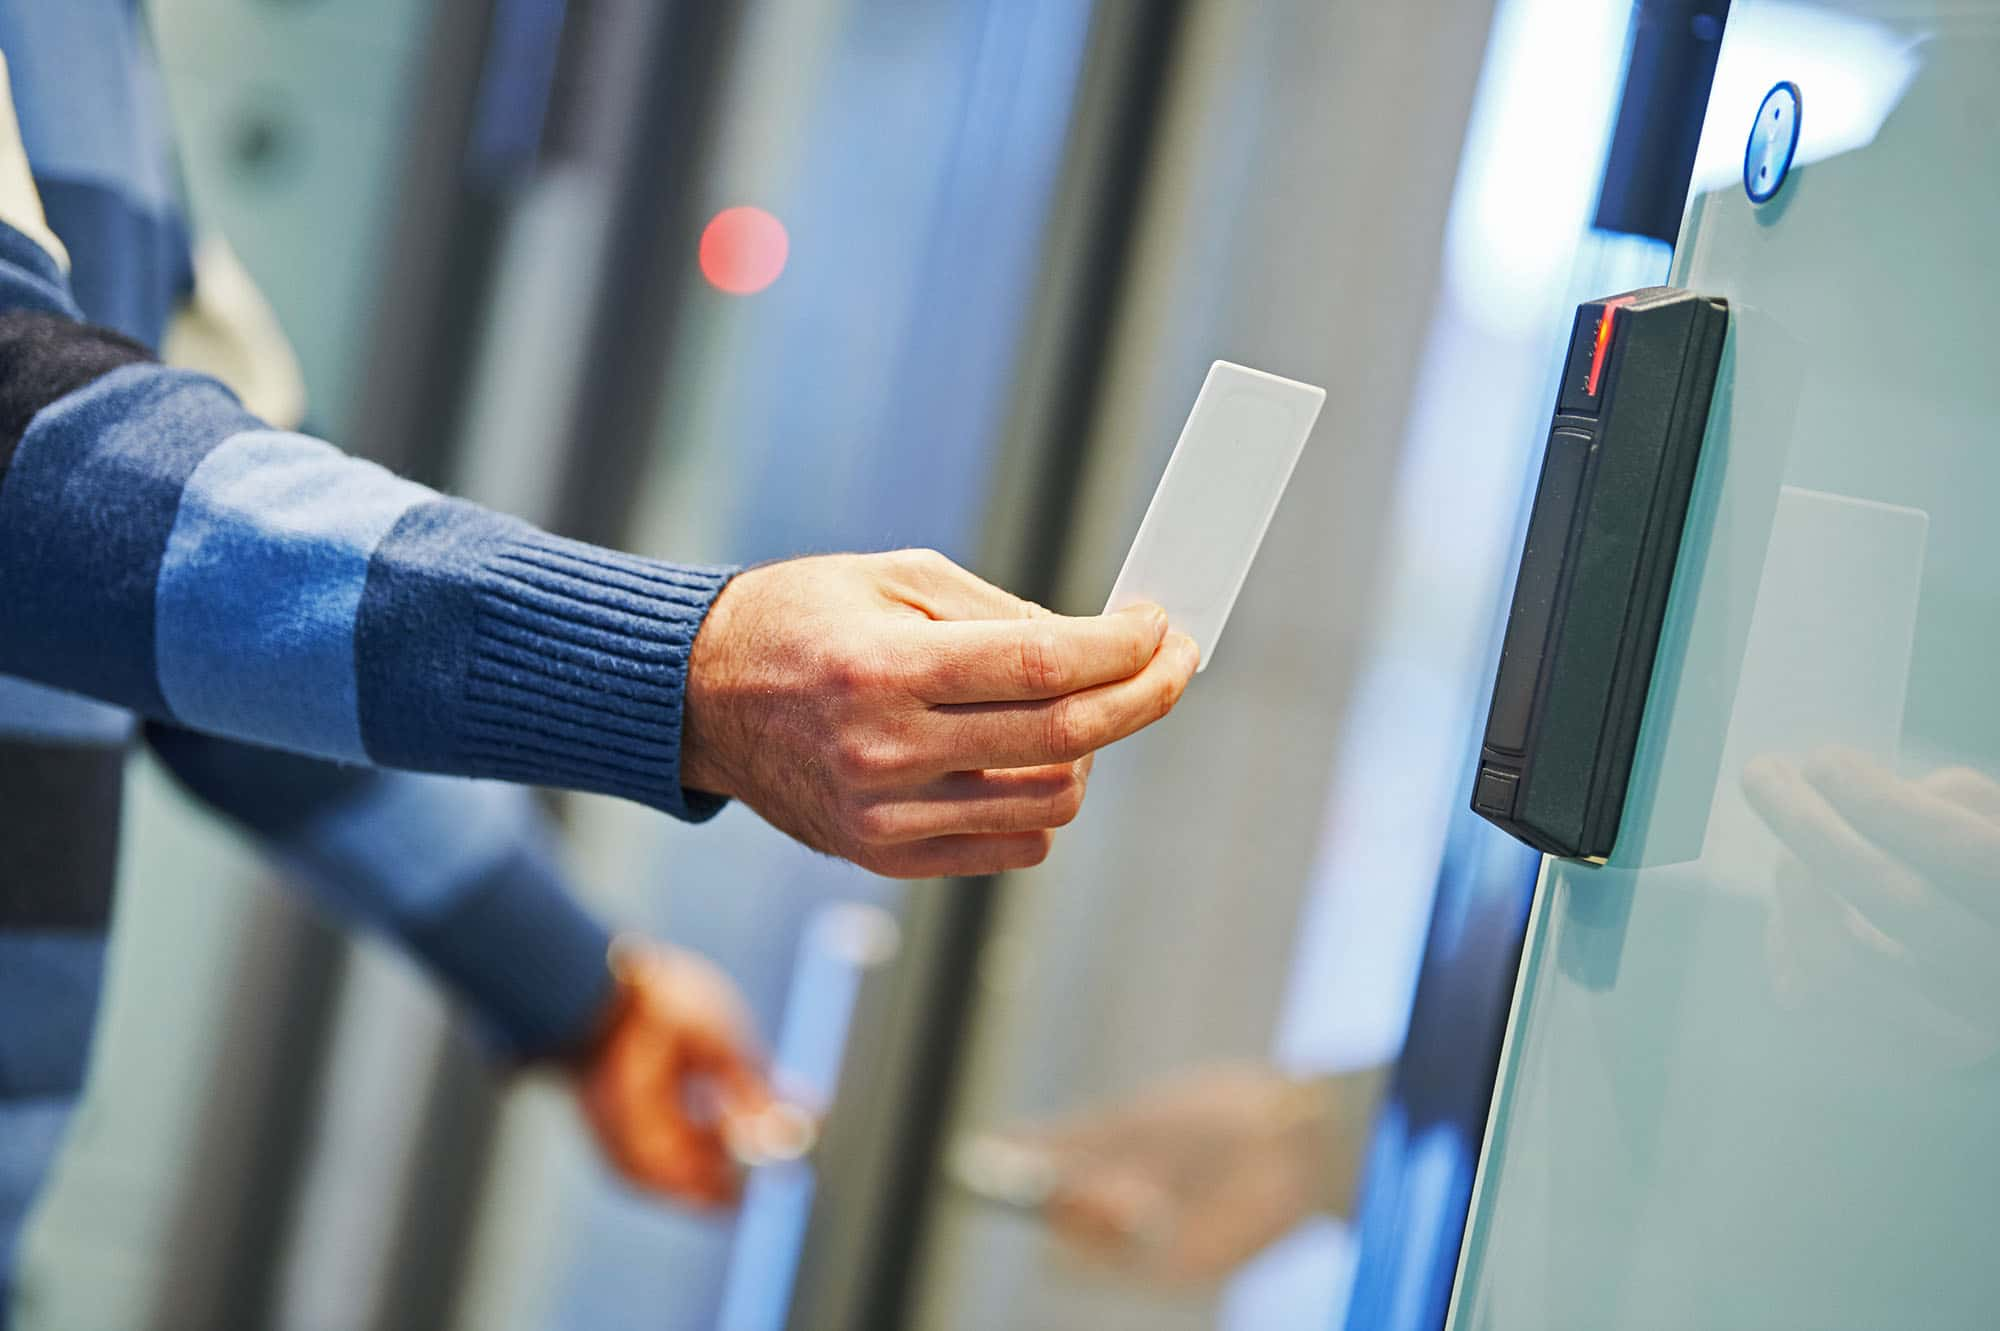 Business man using access control systems swipe card